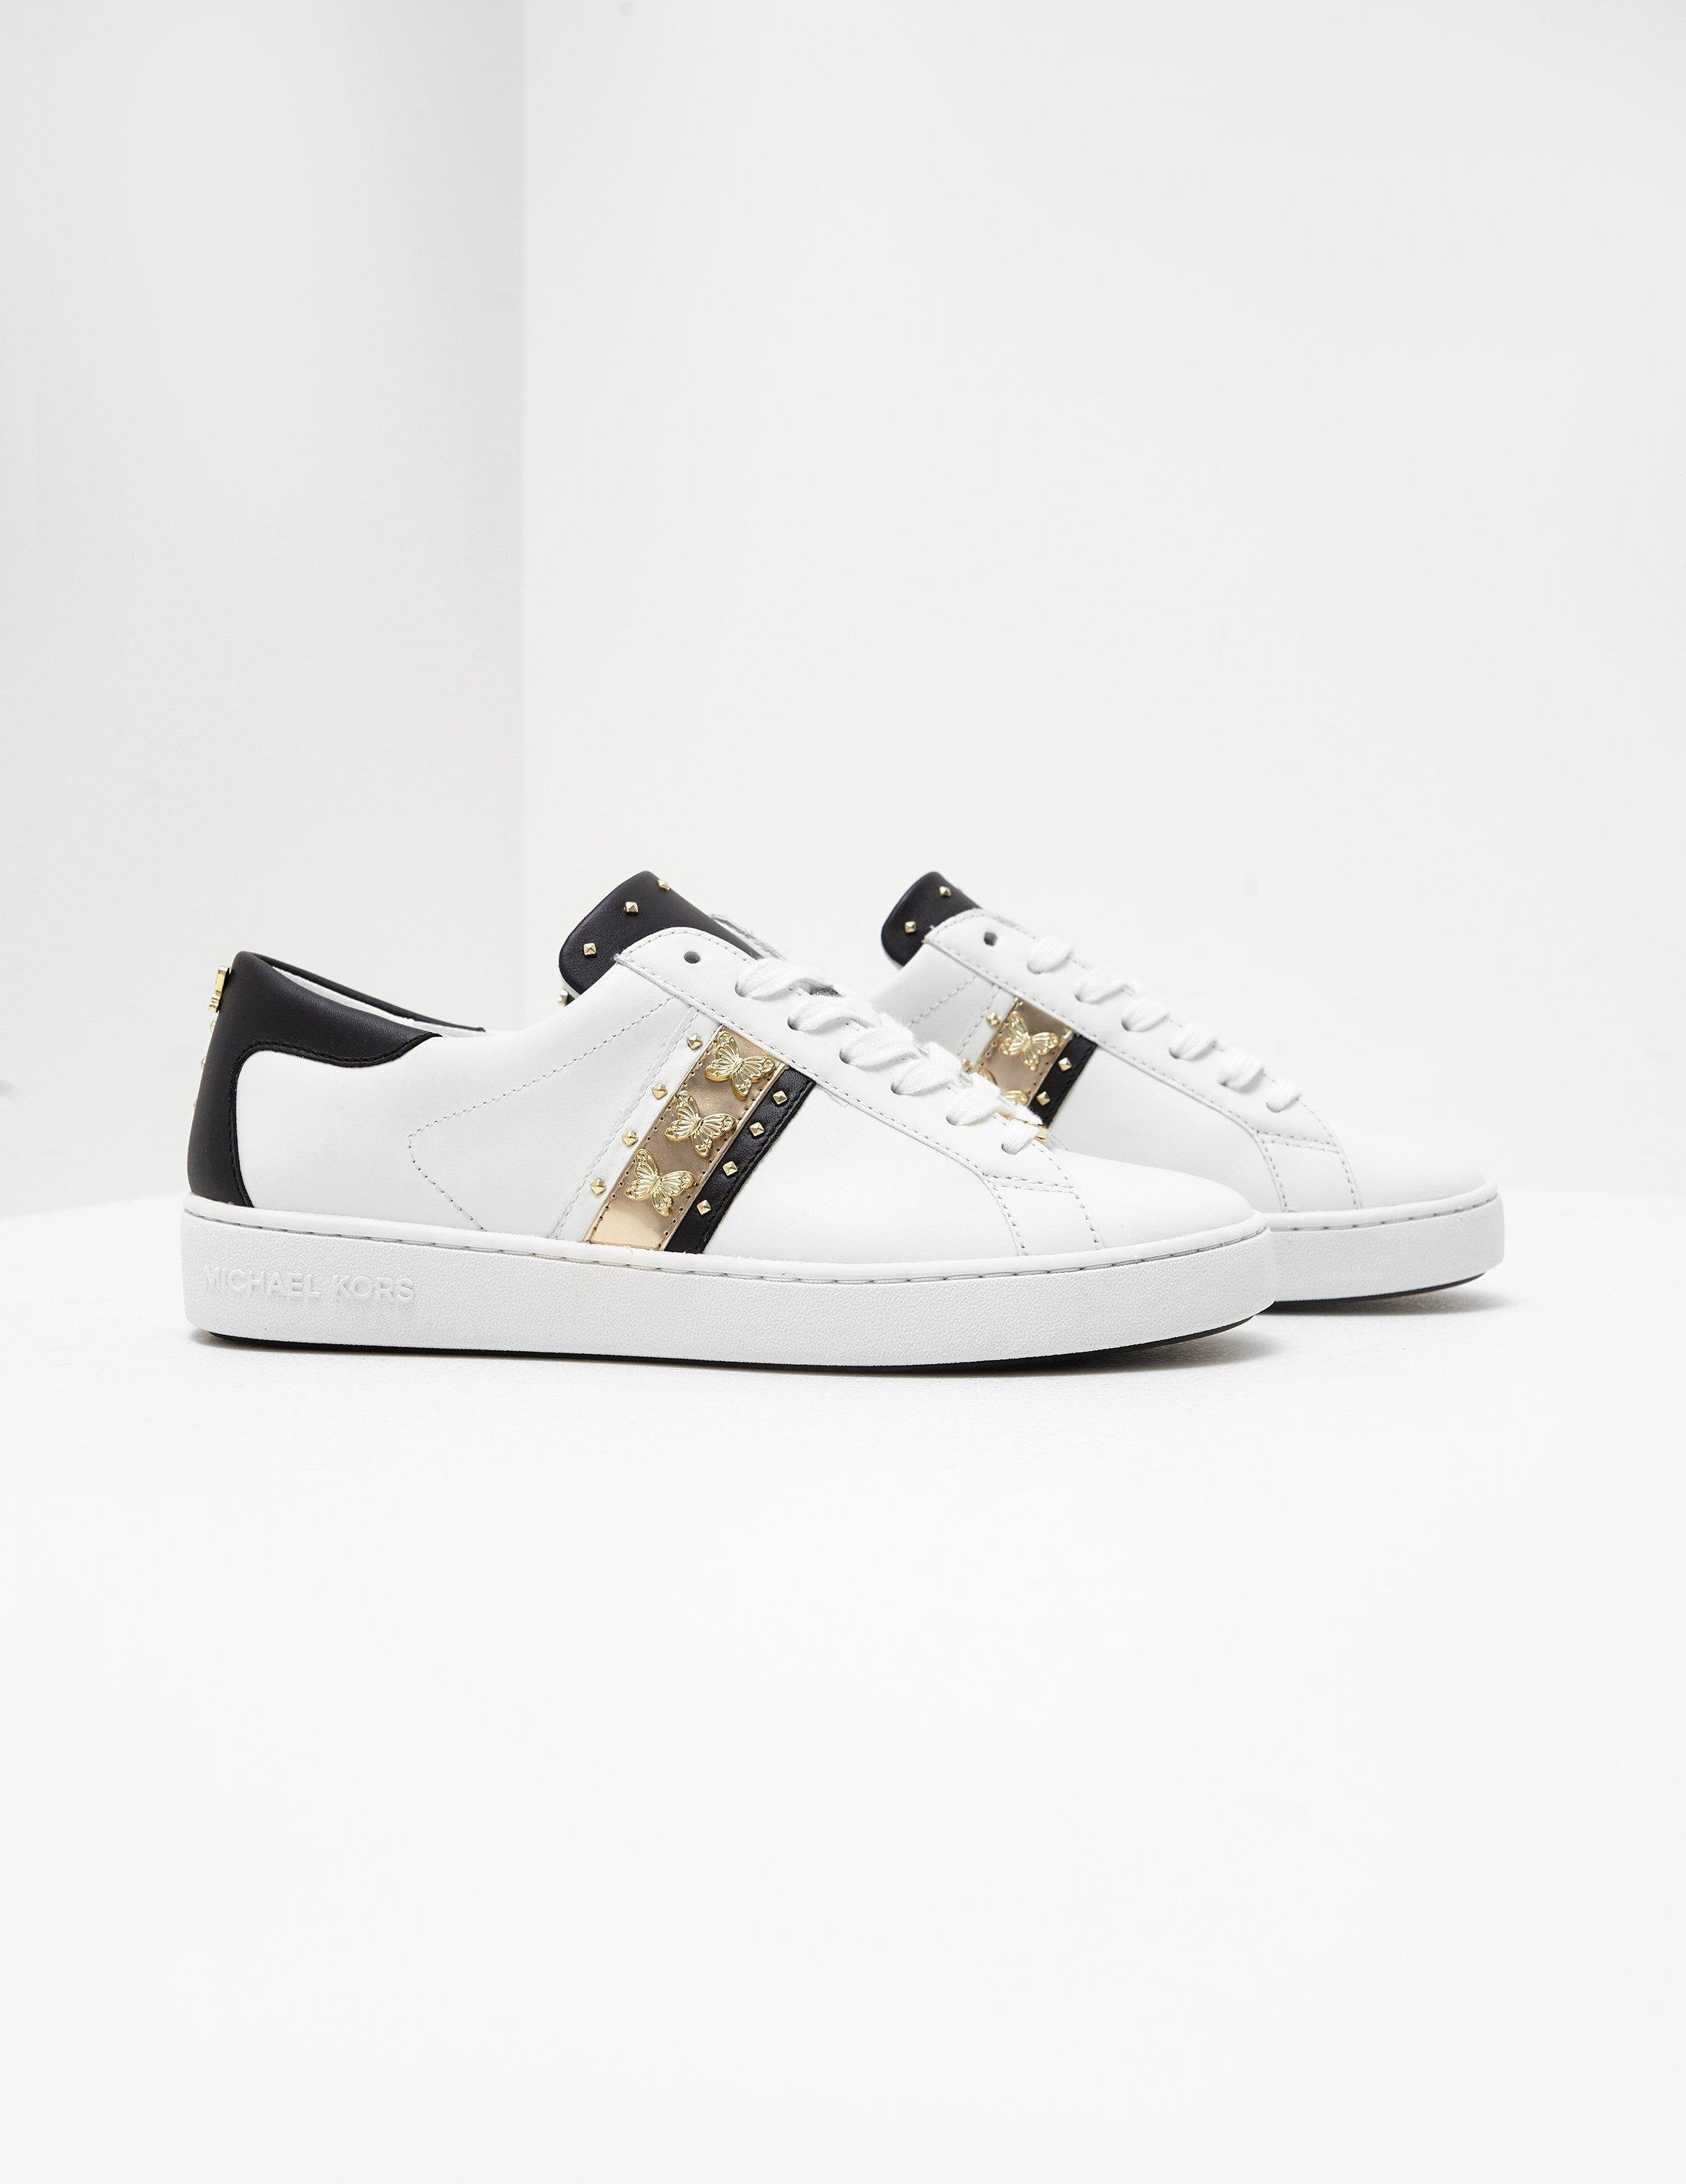 michael kors butterfly trainers